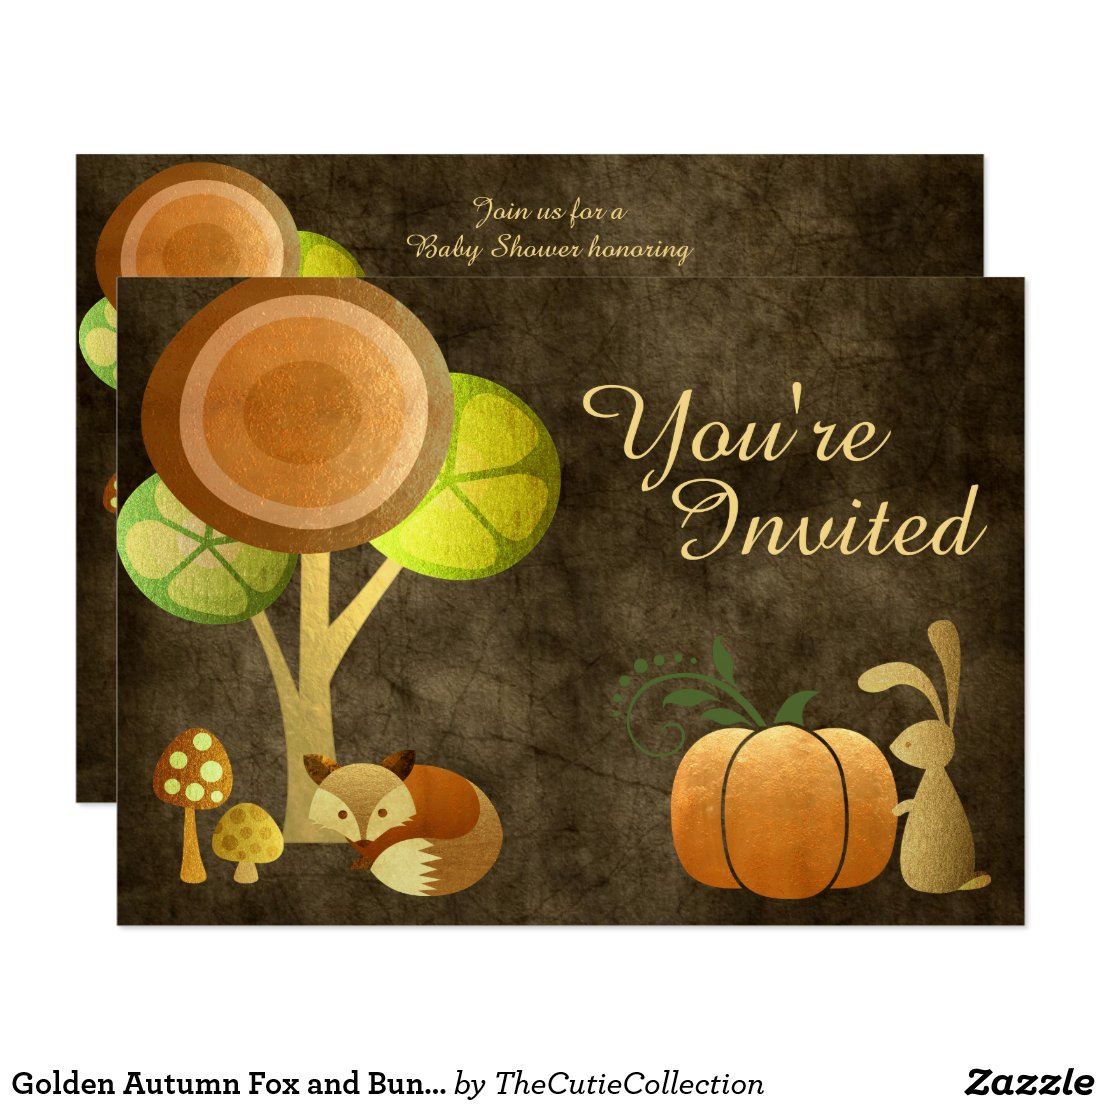 Golden Autumn Fox and Bunny Baby Shower Invitation